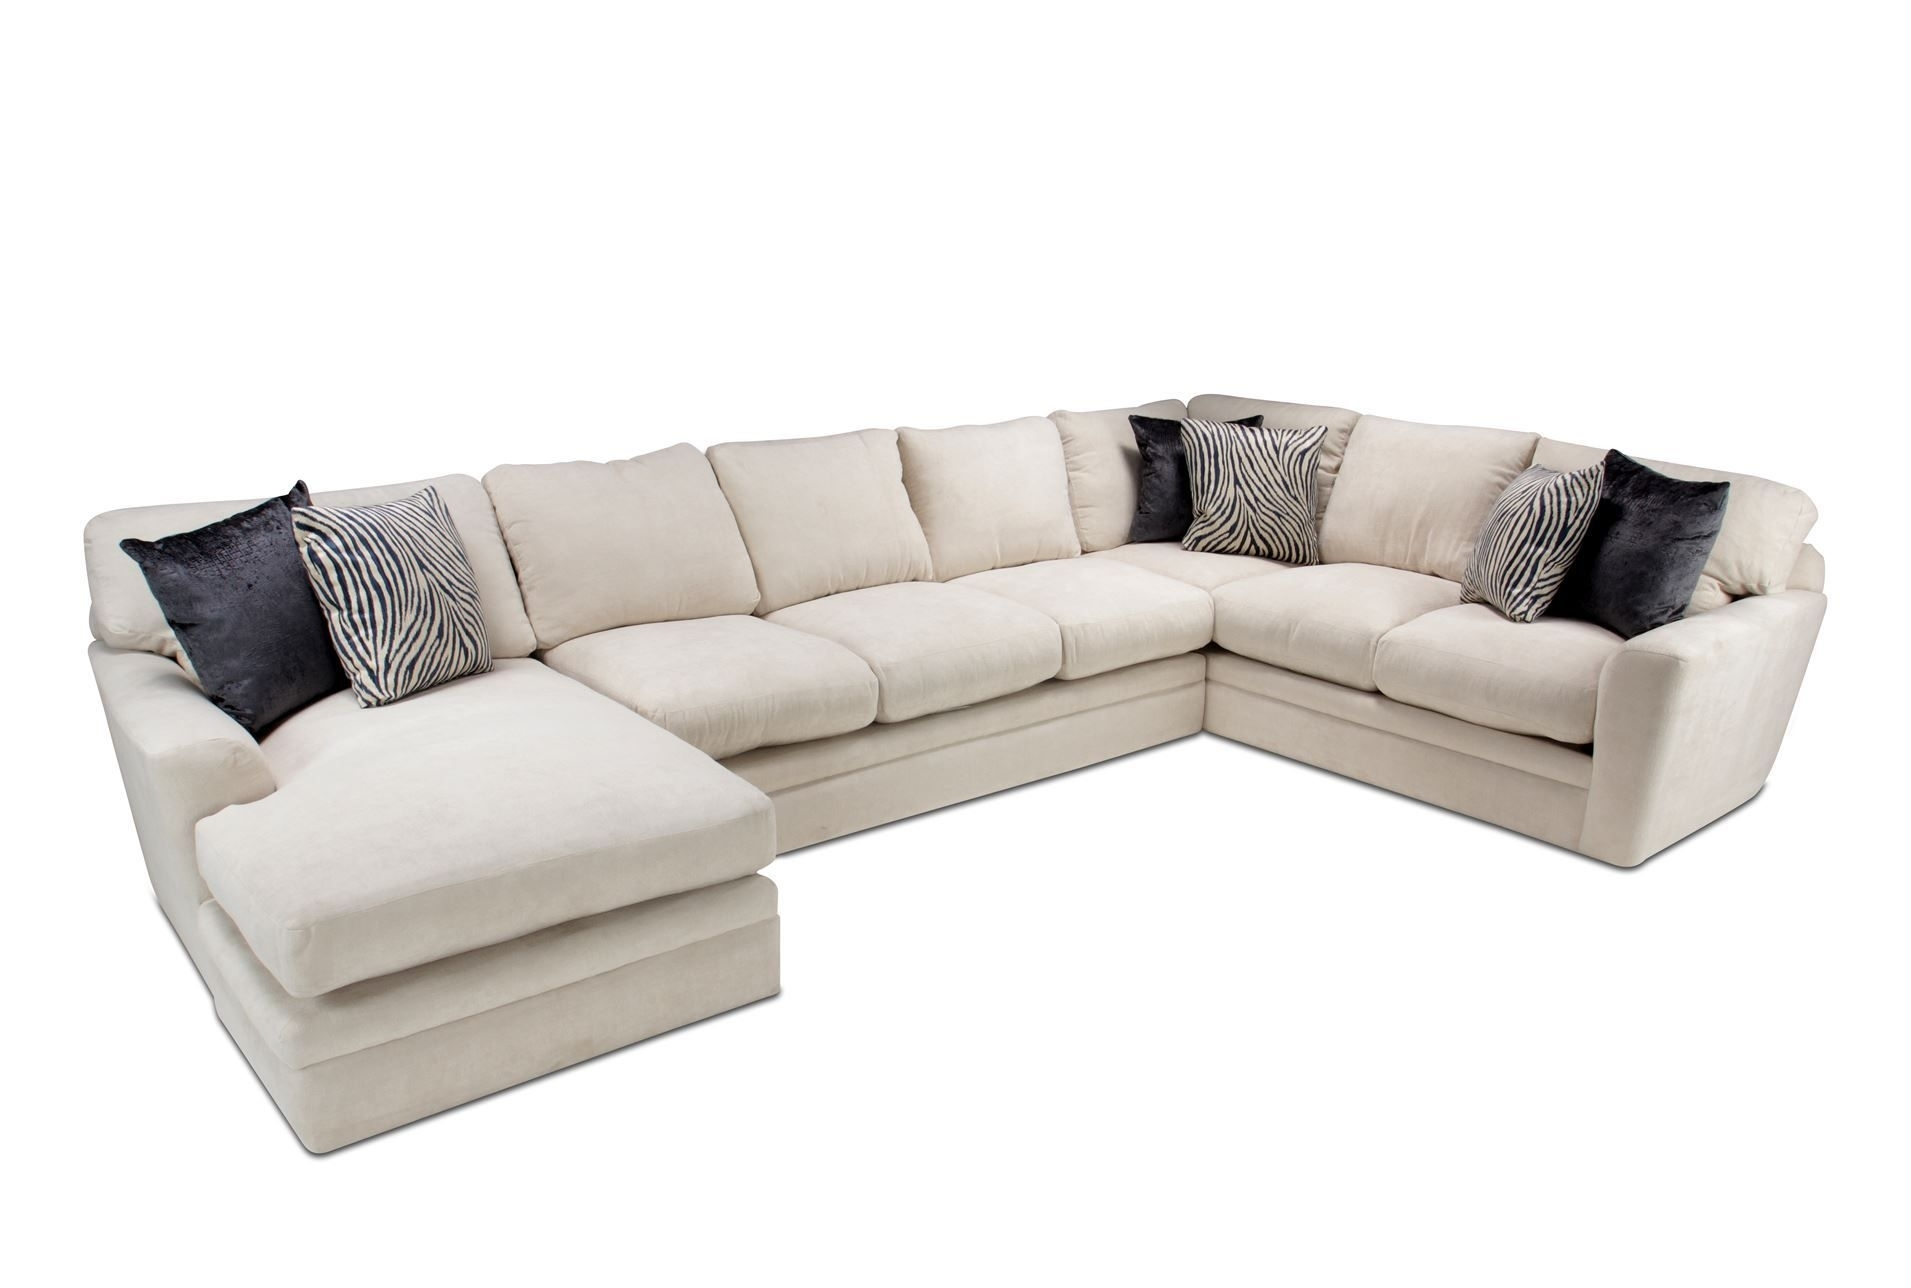 Glamour 3 Piece Sectional. Don't Pay Attention To Color, But The pertaining to Glamour Ii 3 Piece Sectionals